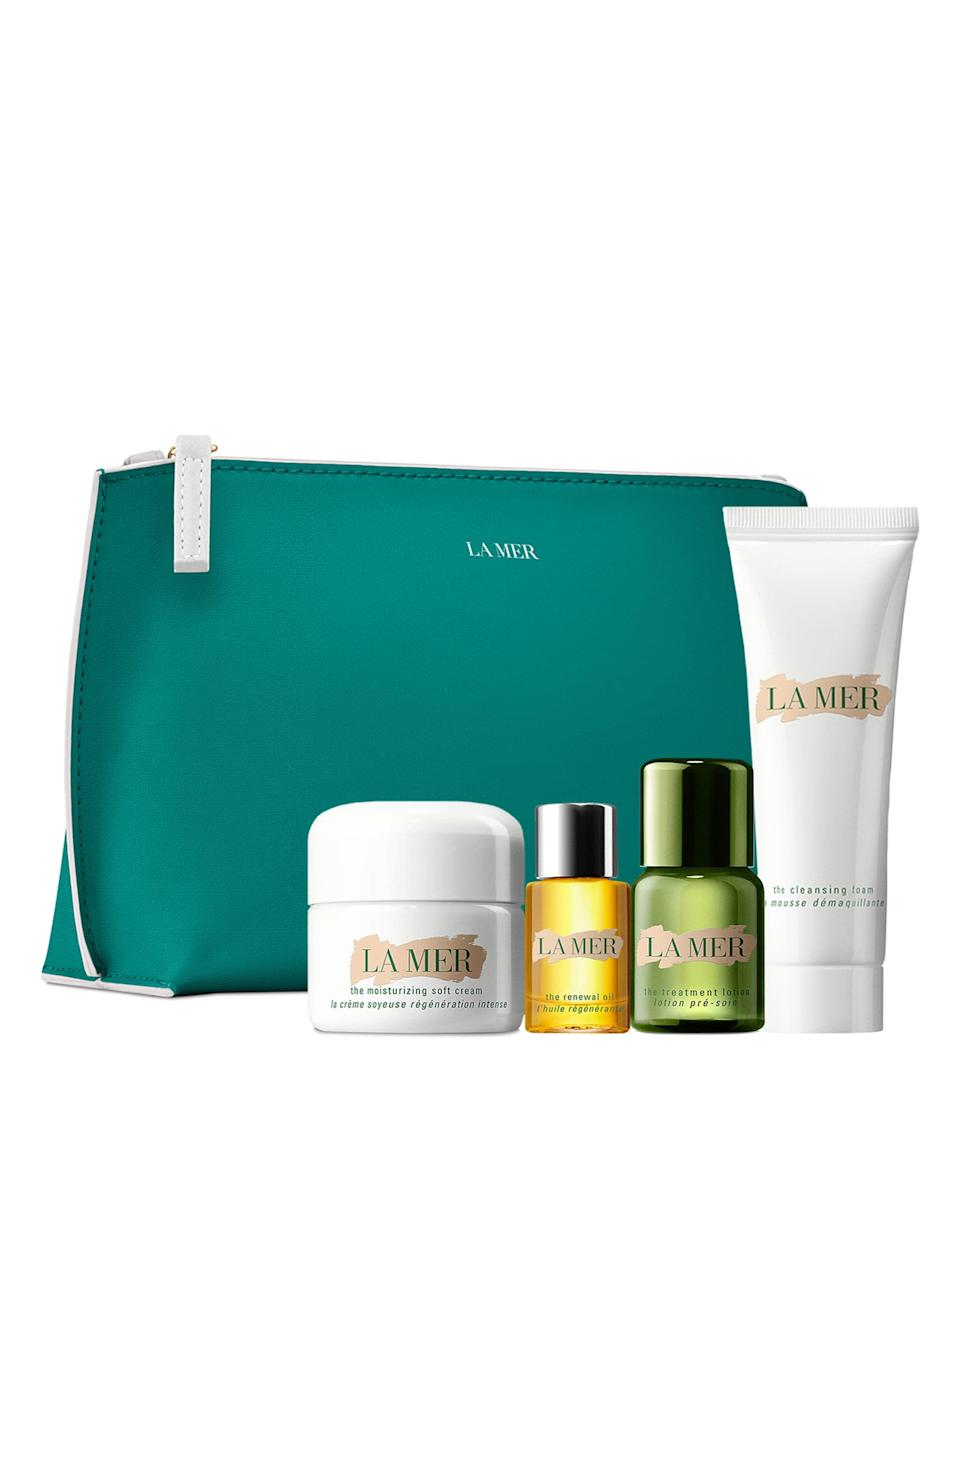 """<p><strong>La Mer </strong></p><p>nordstrom.com</p><p><a href=""""https://go.redirectingat.com?id=74968X1596630&url=https%3A%2F%2Fwww.nordstrom.com%2Fs%2Fla-mer-travel-size-the-moisturizing-soft-cream-set-182-value%2F5919476&sref=https%3A%2F%2Fwww.harpersbazaar.com%2Fbeauty%2Fg36991550%2Fnordstrom-anniversary-sale-beauty-deals%2F"""" rel=""""nofollow noopener"""" target=""""_blank"""" data-ylk=""""slk:Shop Now"""" class=""""link rapid-noclick-resp"""">Shop Now</a></p><p><strong>Sale: $95</strong></p><p><strong>Value: $182</strong></p><p>If you or a loved one has somehow made it this long without trying La Mer moisturizers, this travel-friendly will quickly reveal why La Mer is a <a href=""""https://www.harpersbazaar.com/uk/beauty/skincare/a22775996/la-mer-billion-dollar-brand/"""" rel=""""nofollow noopener"""" target=""""_blank"""" data-ylk=""""slk:billion-dollar"""" class=""""link rapid-noclick-resp"""">billion-dollar </a>beauty brand. The collection includes one Moisturizing Soft Cream, one Cleansing Foam, one Treatment Lotion and one Skin Renewal Oil. </p>"""